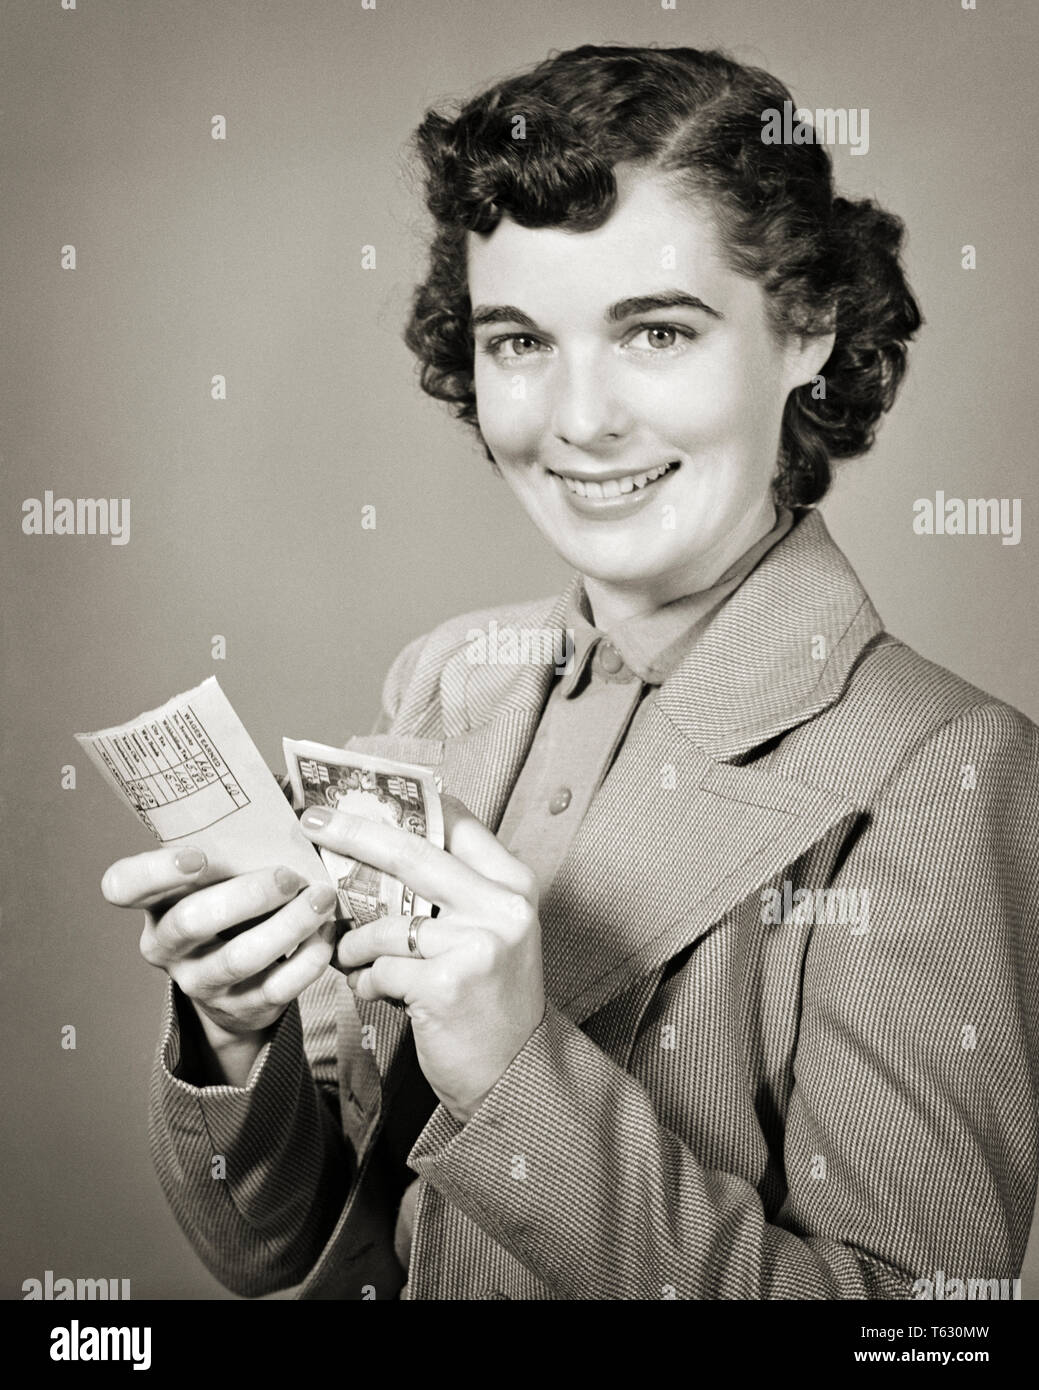 1940s 1950s SMILING BRUNETTE WOMAN LOOKING AT CAMERA OPENING PAYCHECK ENVELOPE AND HOLDING THE CASH - s8493 HAR001 HARS BRUNETTE FREEDOM SKILL TEMPTATION DREAMS OCCUPATION HAPPINESS SKILLS PAYCHECK CHEERFUL STRENGTH PAY AND EXCITEMENT PRIDE THE OCCUPATIONS SMILES JOYFUL STYLISH COMPENSATION EMPLOYEE YOUNG ADULT WOMAN BLACK AND WHITE CAUCASIAN ETHNICITY HAR001 OLD FASHIONED - Stock Image